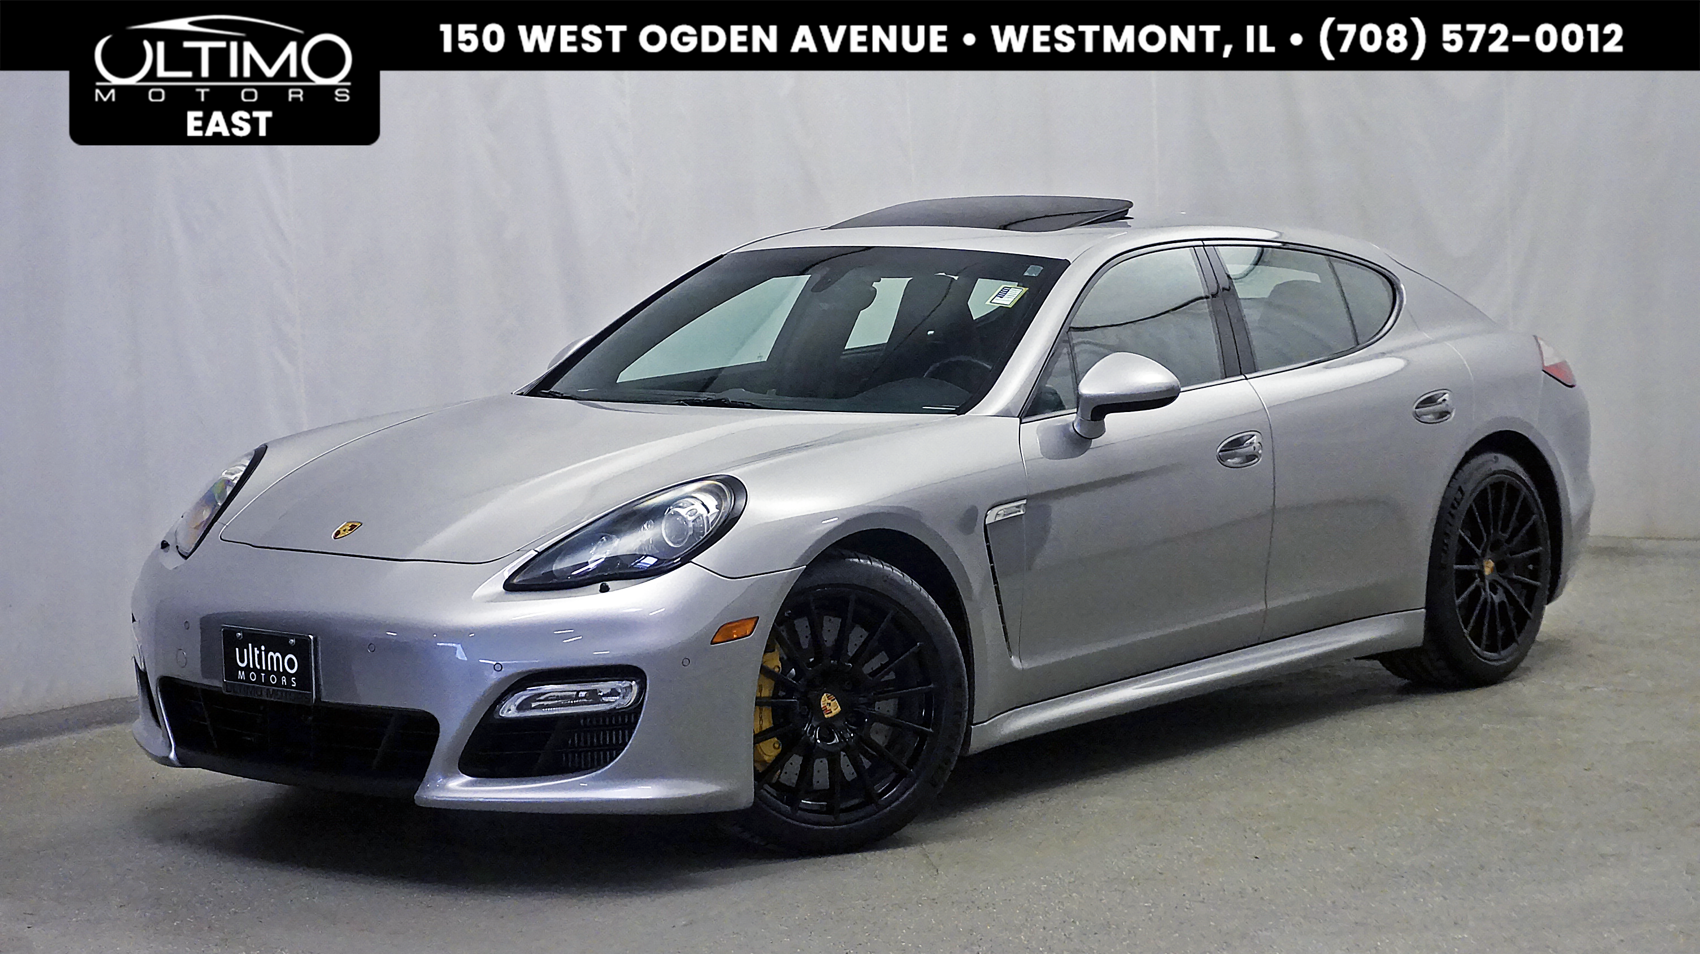 Pre-Owned 2013 Porsche Panamera Turbo Ceramic Brakes, Comfort+, PDCC, LCA, Burmester Sound $184,940 MSRP